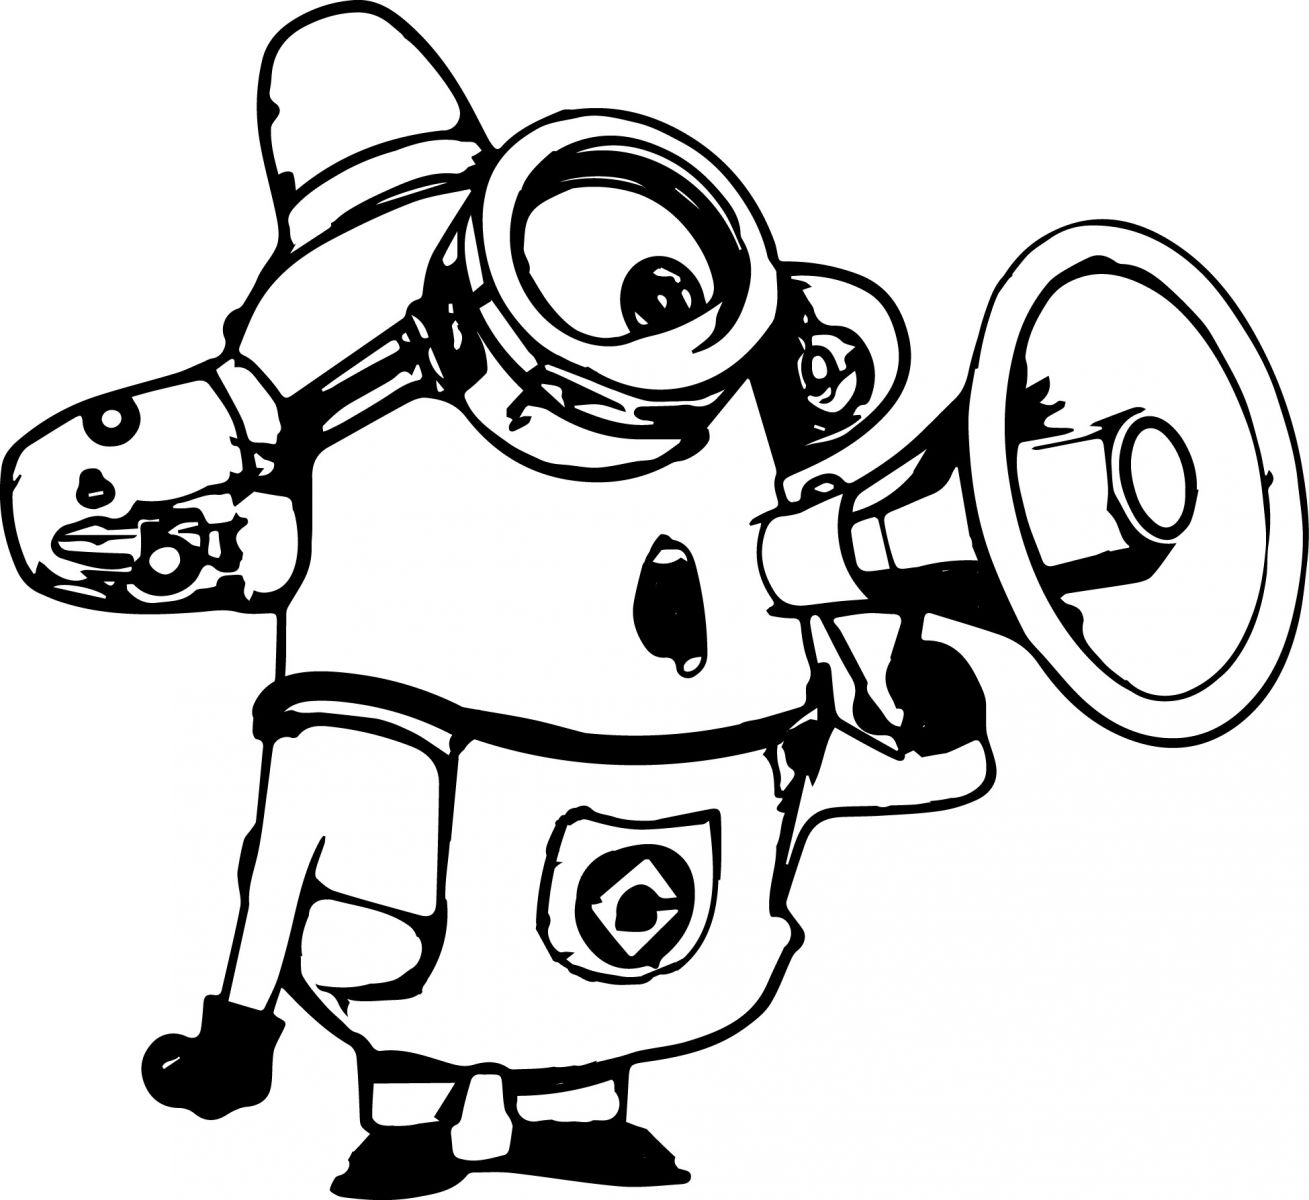 despicable me coloring pictures despicable me smiling minion coloring page for kids coloring despicable pictures me